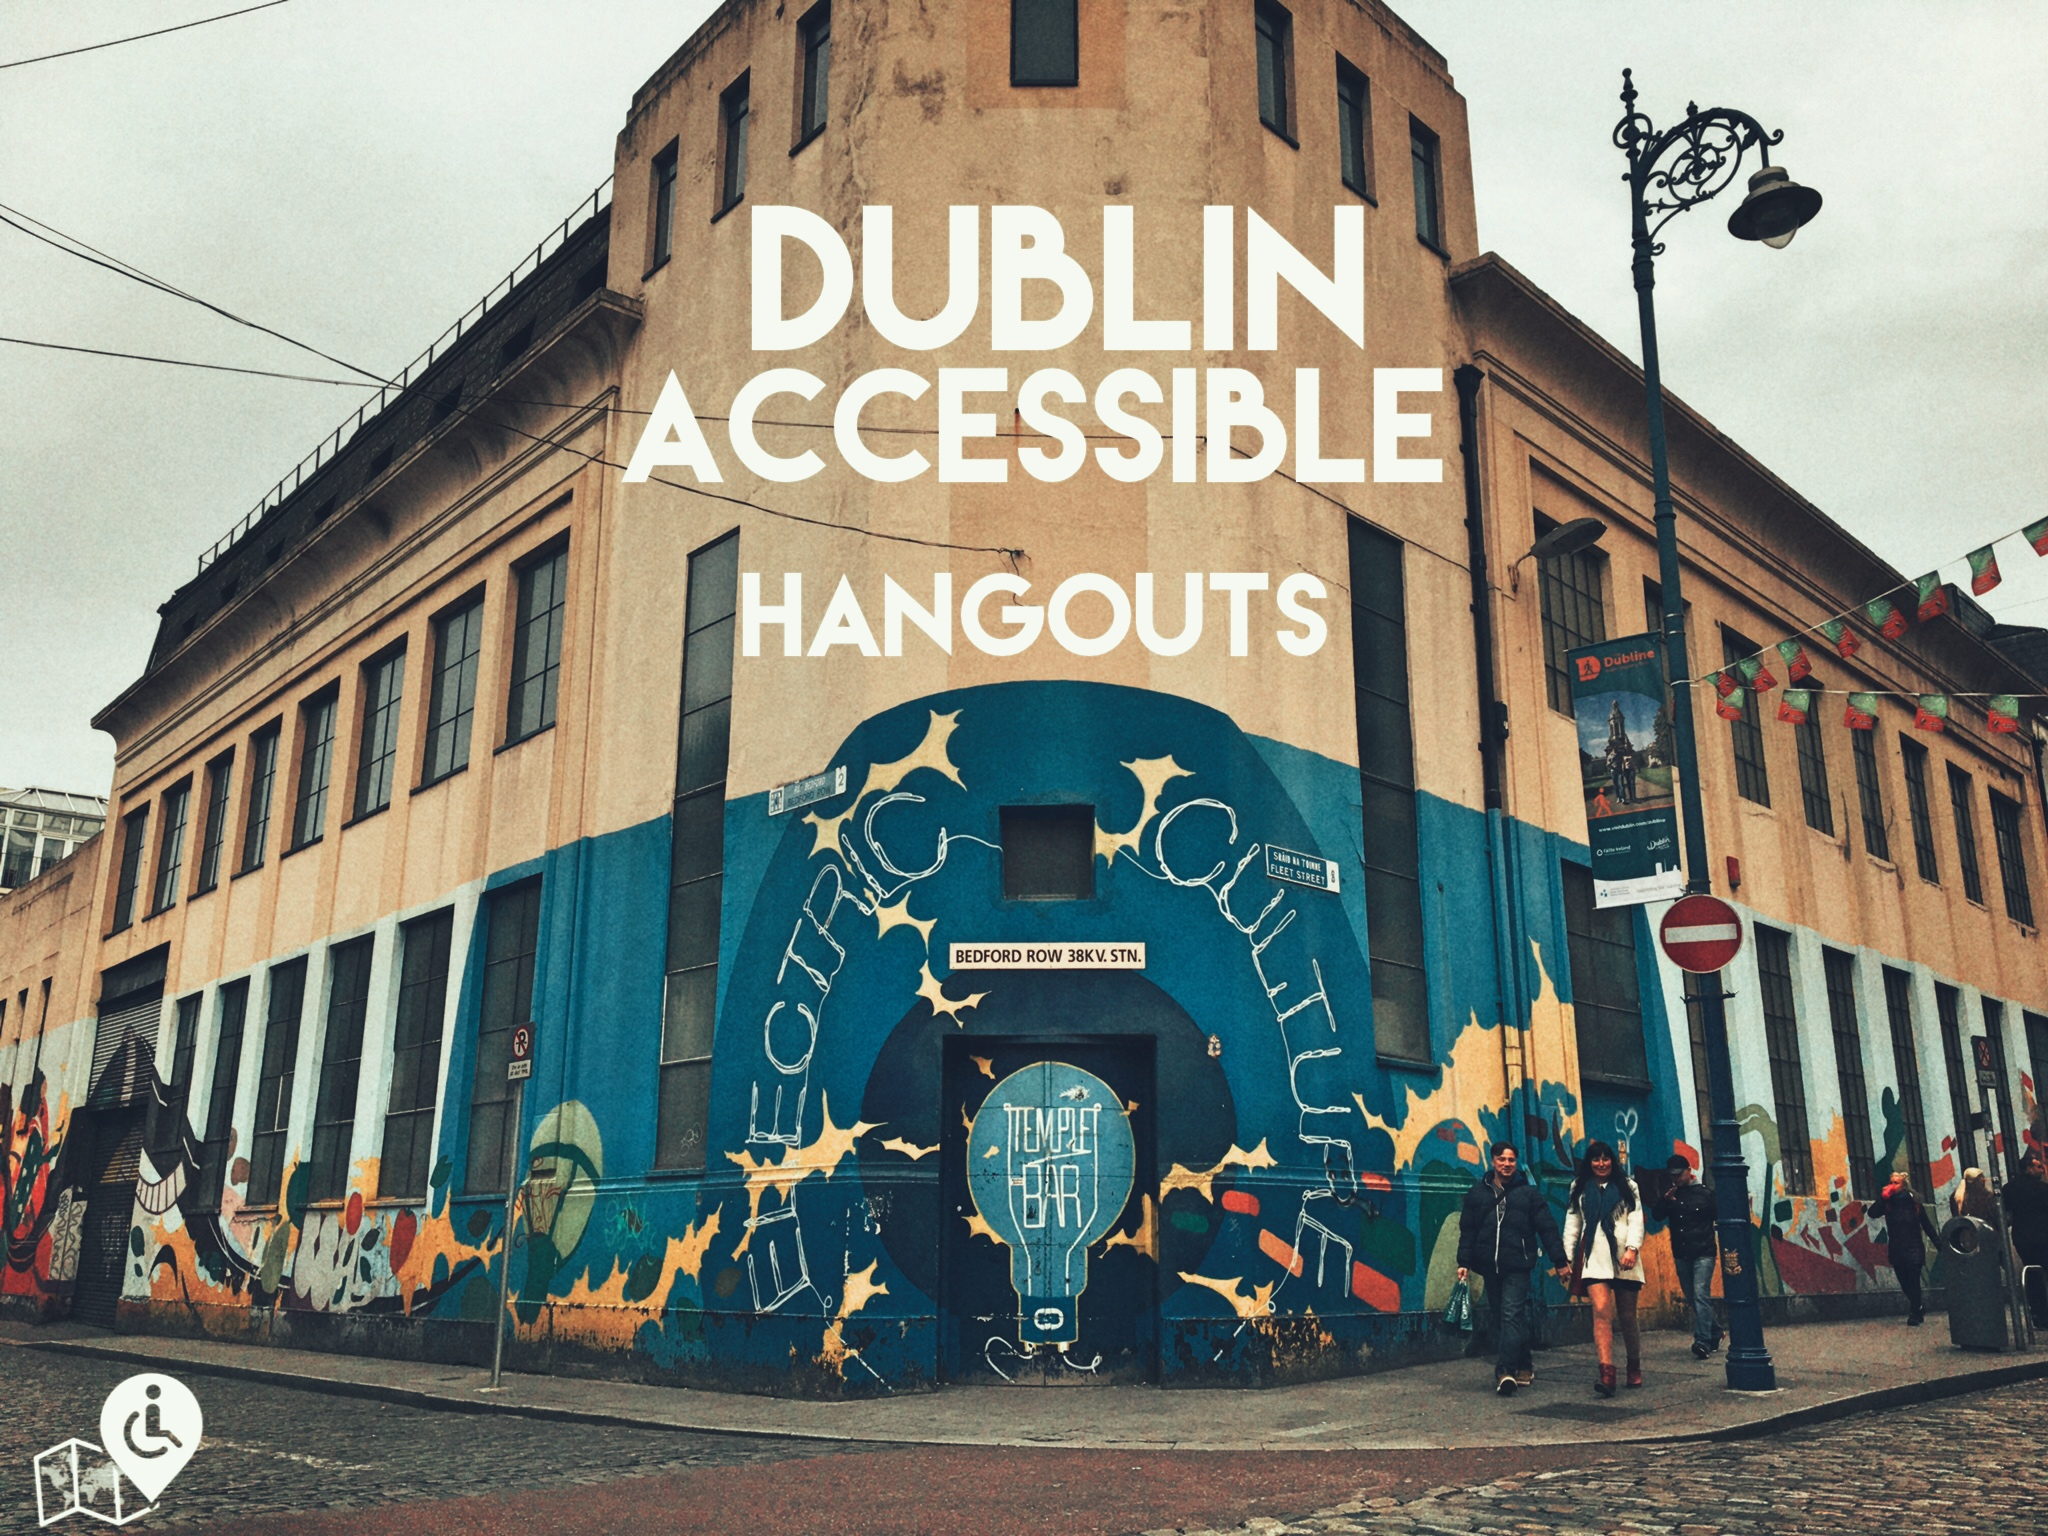 The Temple Bar is the cultural quarter of Dublin. Here you share the pavement with market stalls, street theatre and buskers. Click on the picture for full hang outs reviews.